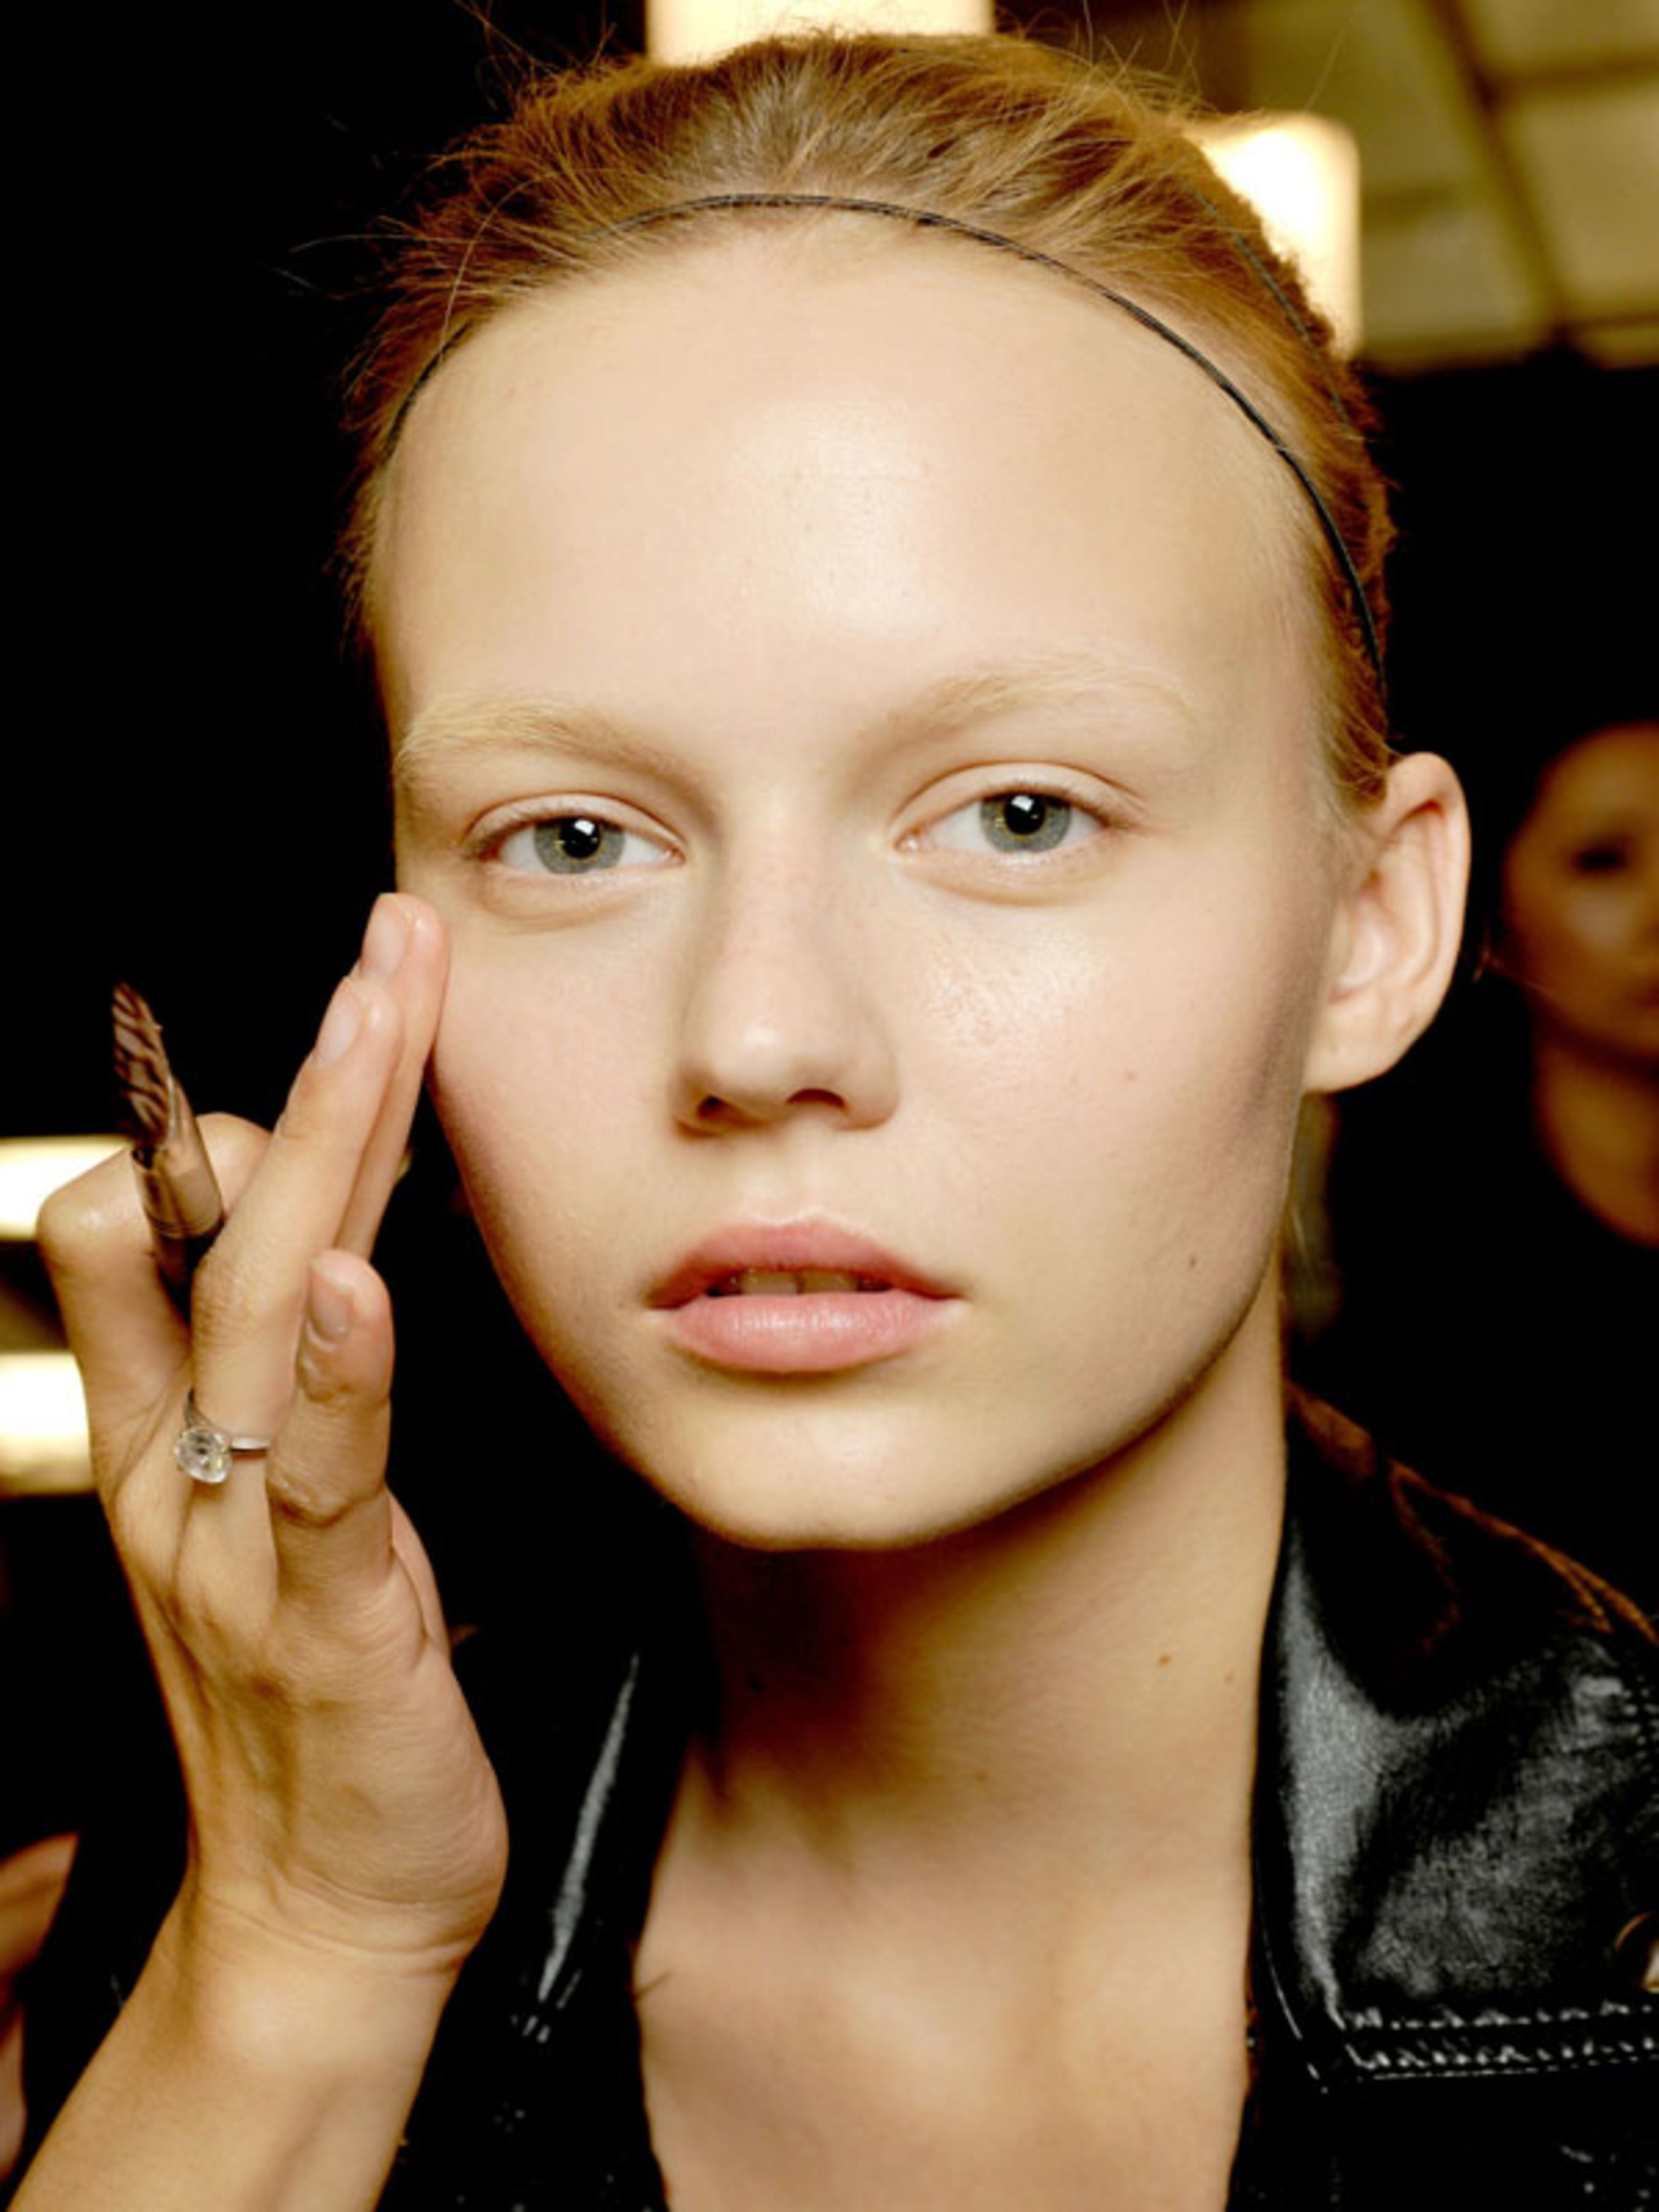 7 Foundation Mistakes That Make You Look Older